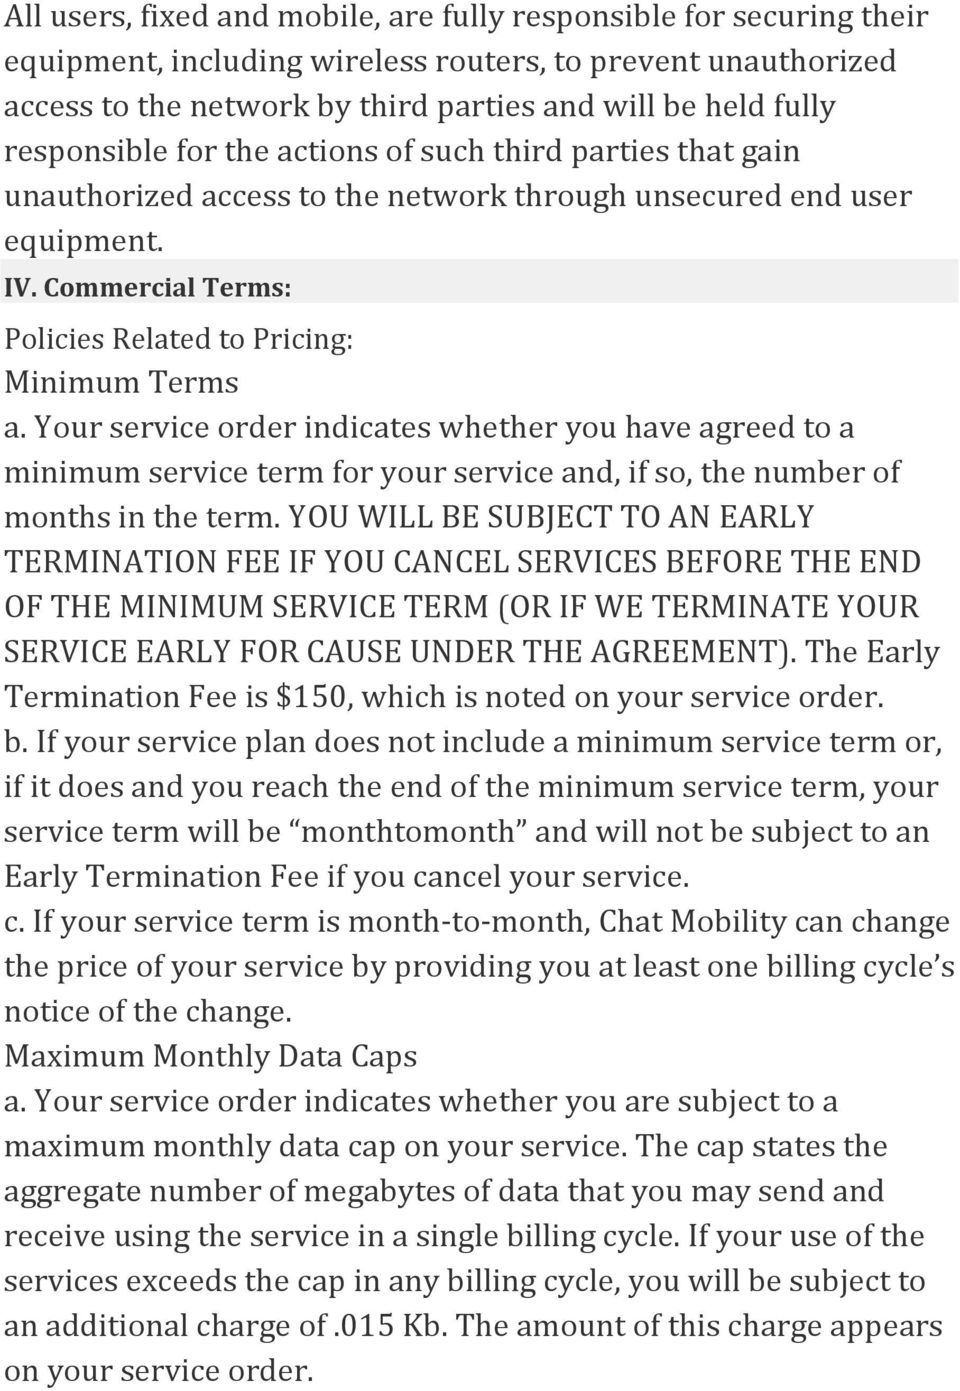 Your service order indicates whether you have agreed to a minimum service term for your service and, if so, the number of months in the term.